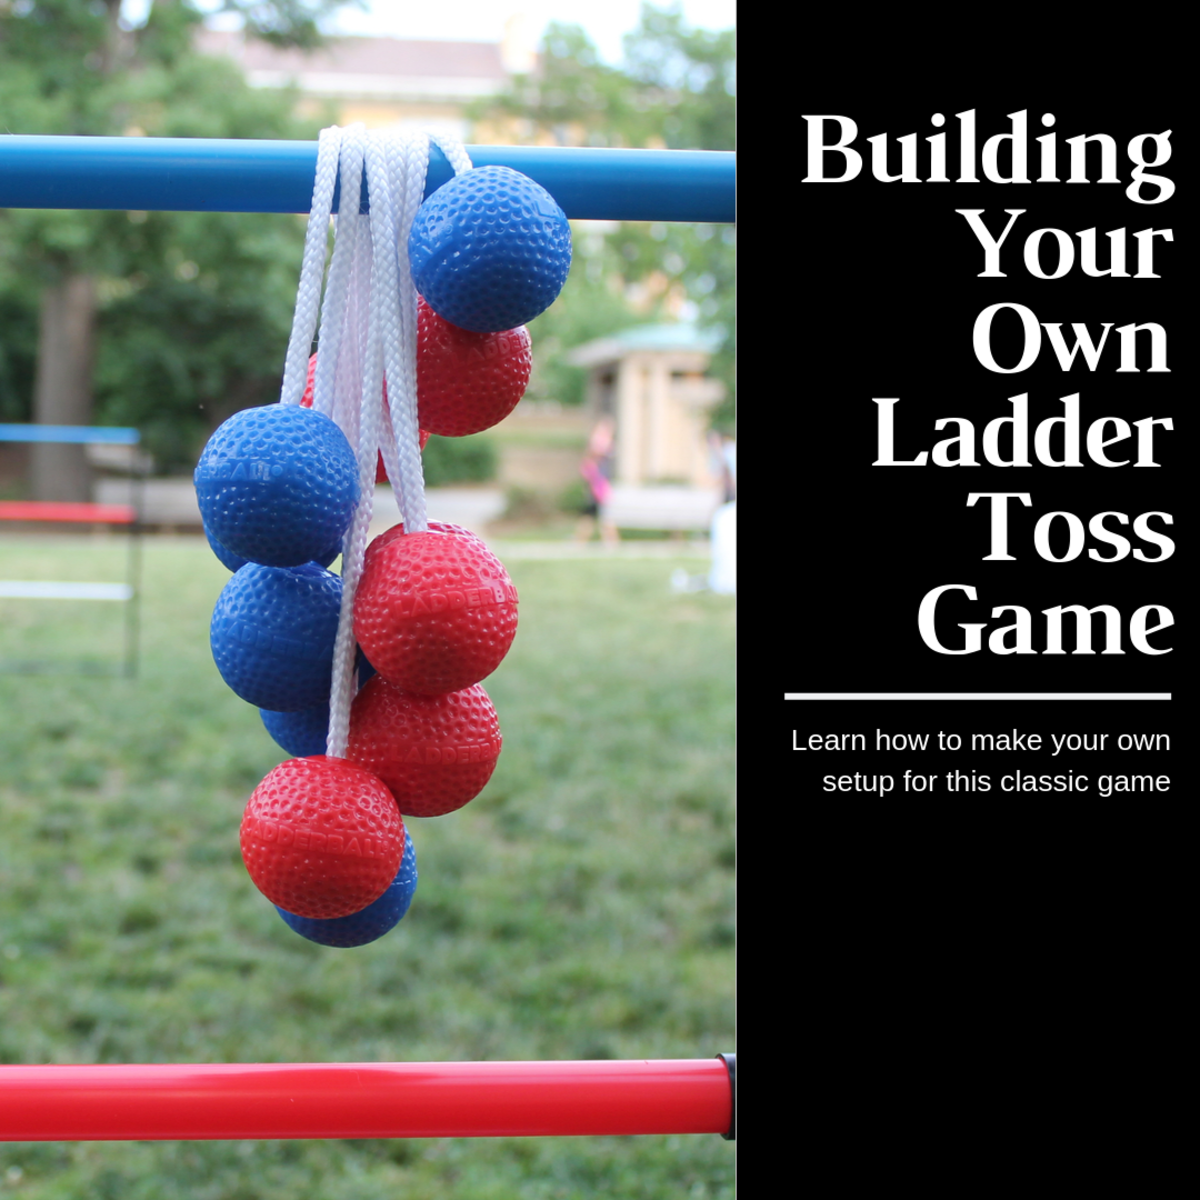 This article will detail the rules of ladder toss and outline how you can build your own set from common materials.